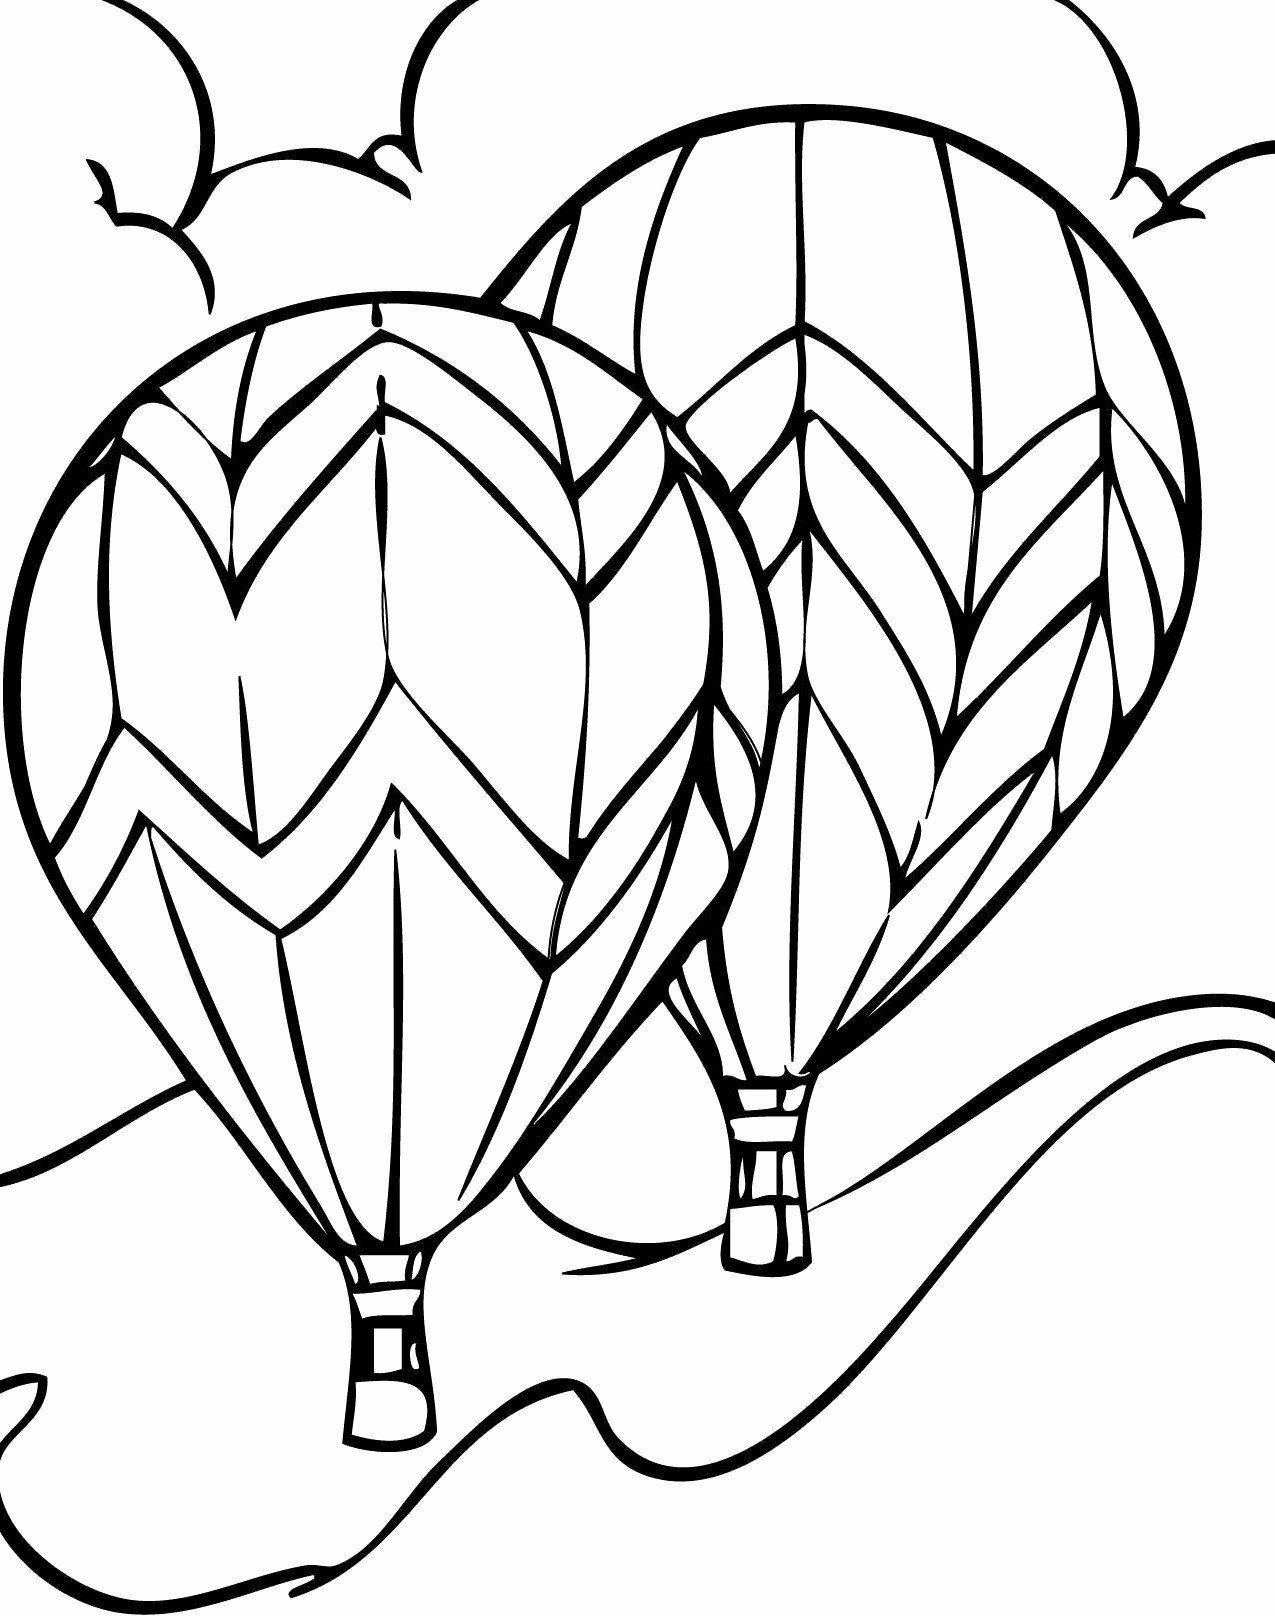 Coloring Books For Adults With Dementia Coloring Pages Coloring Pages Easy Abstract Mandala A In 2020 Easy Coloring Pages Toddler Coloring Book Coloring Pages To Print